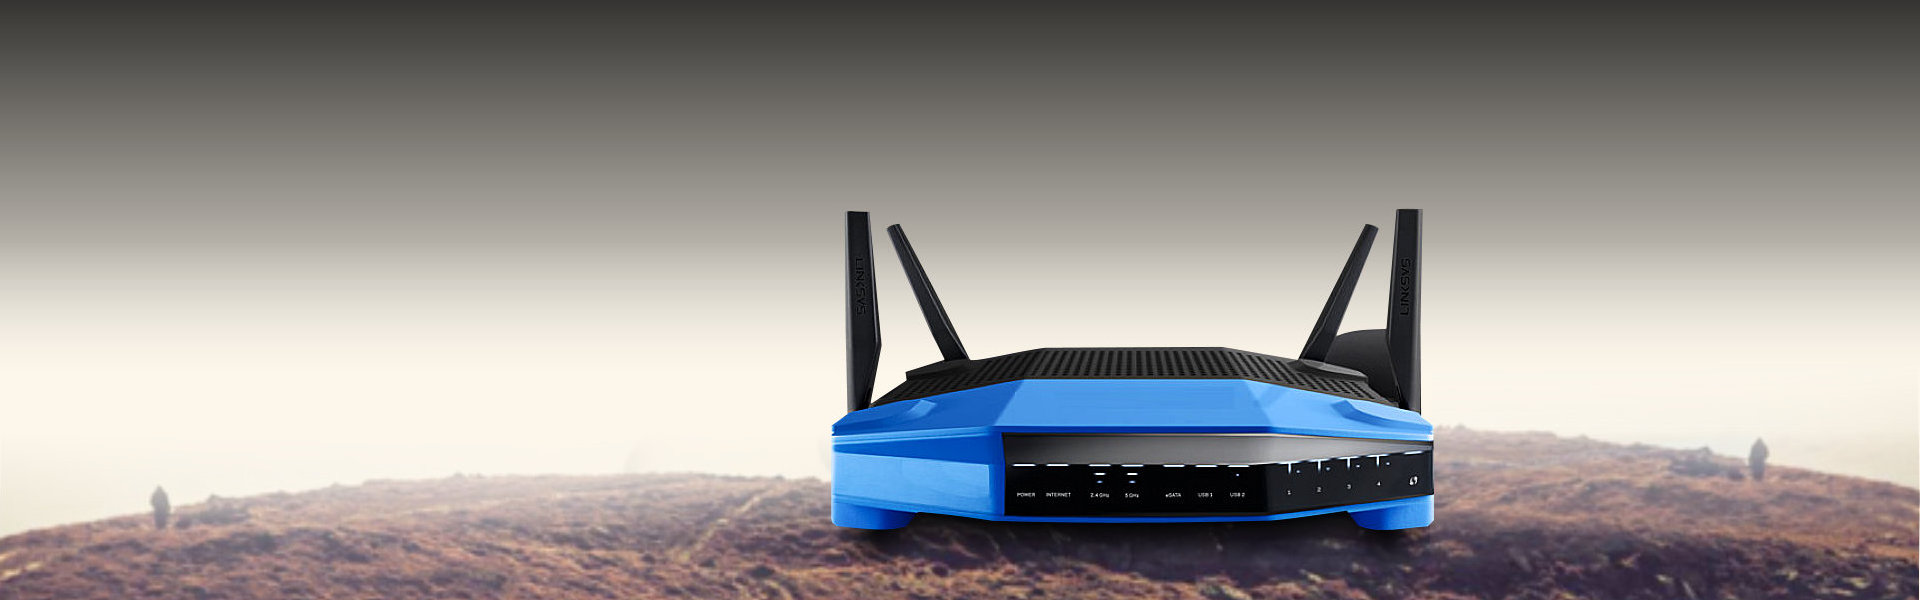 blue color modem